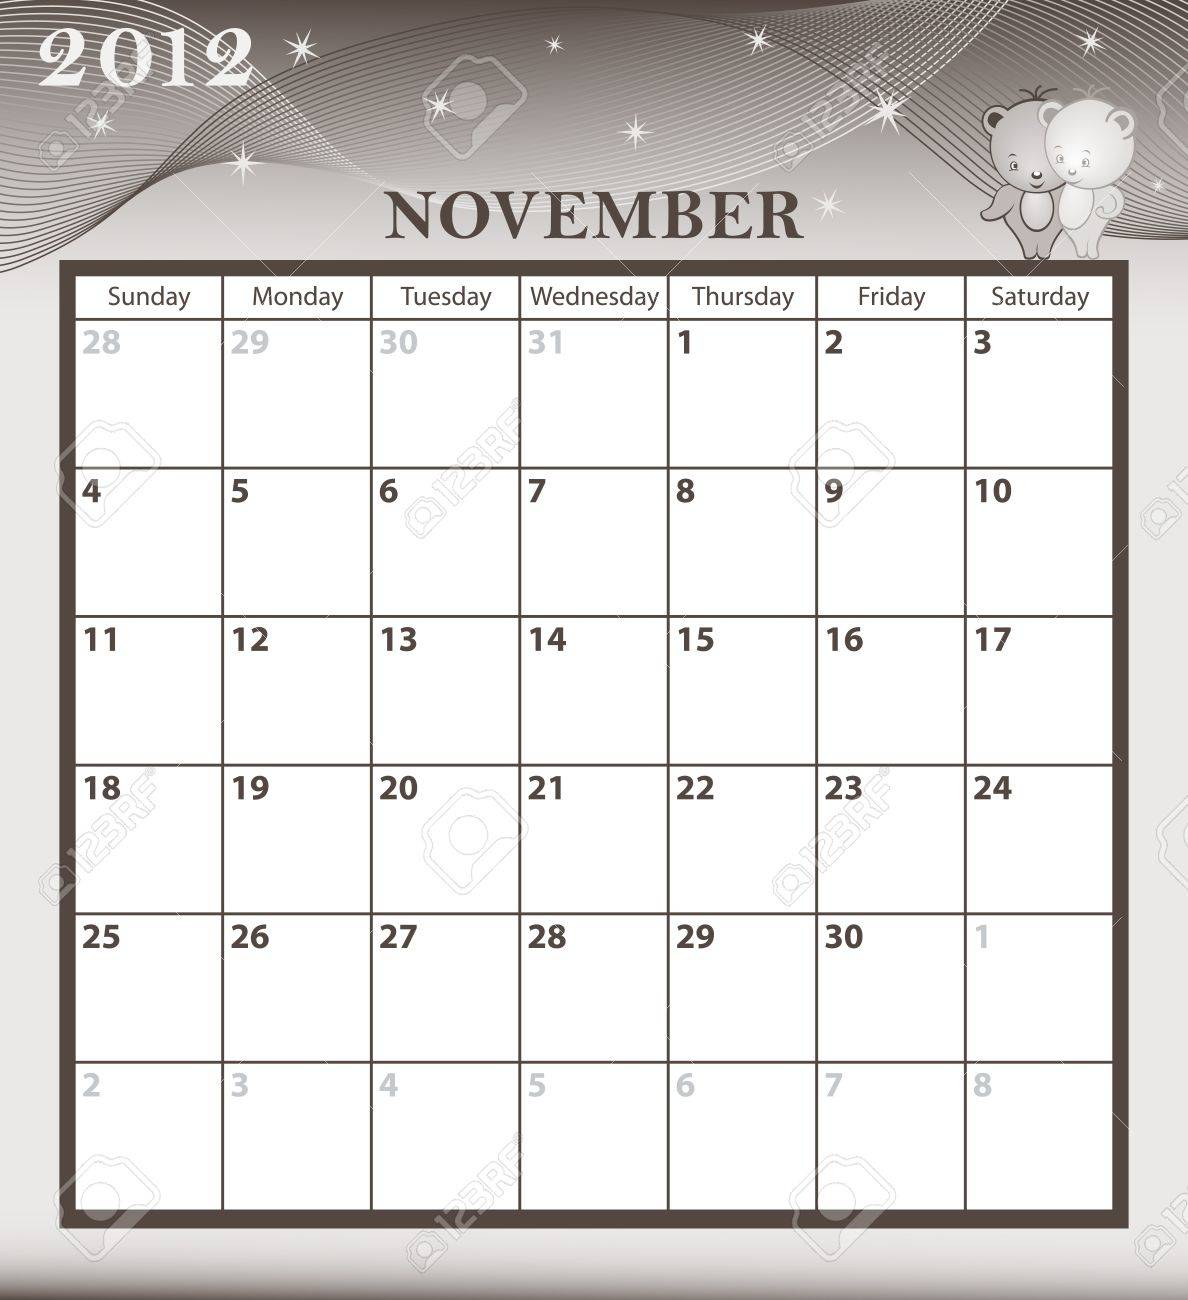 Calendar 2012 November month with large date boxes. Cartoon characters and patterned background. Stock Vector - 10262729